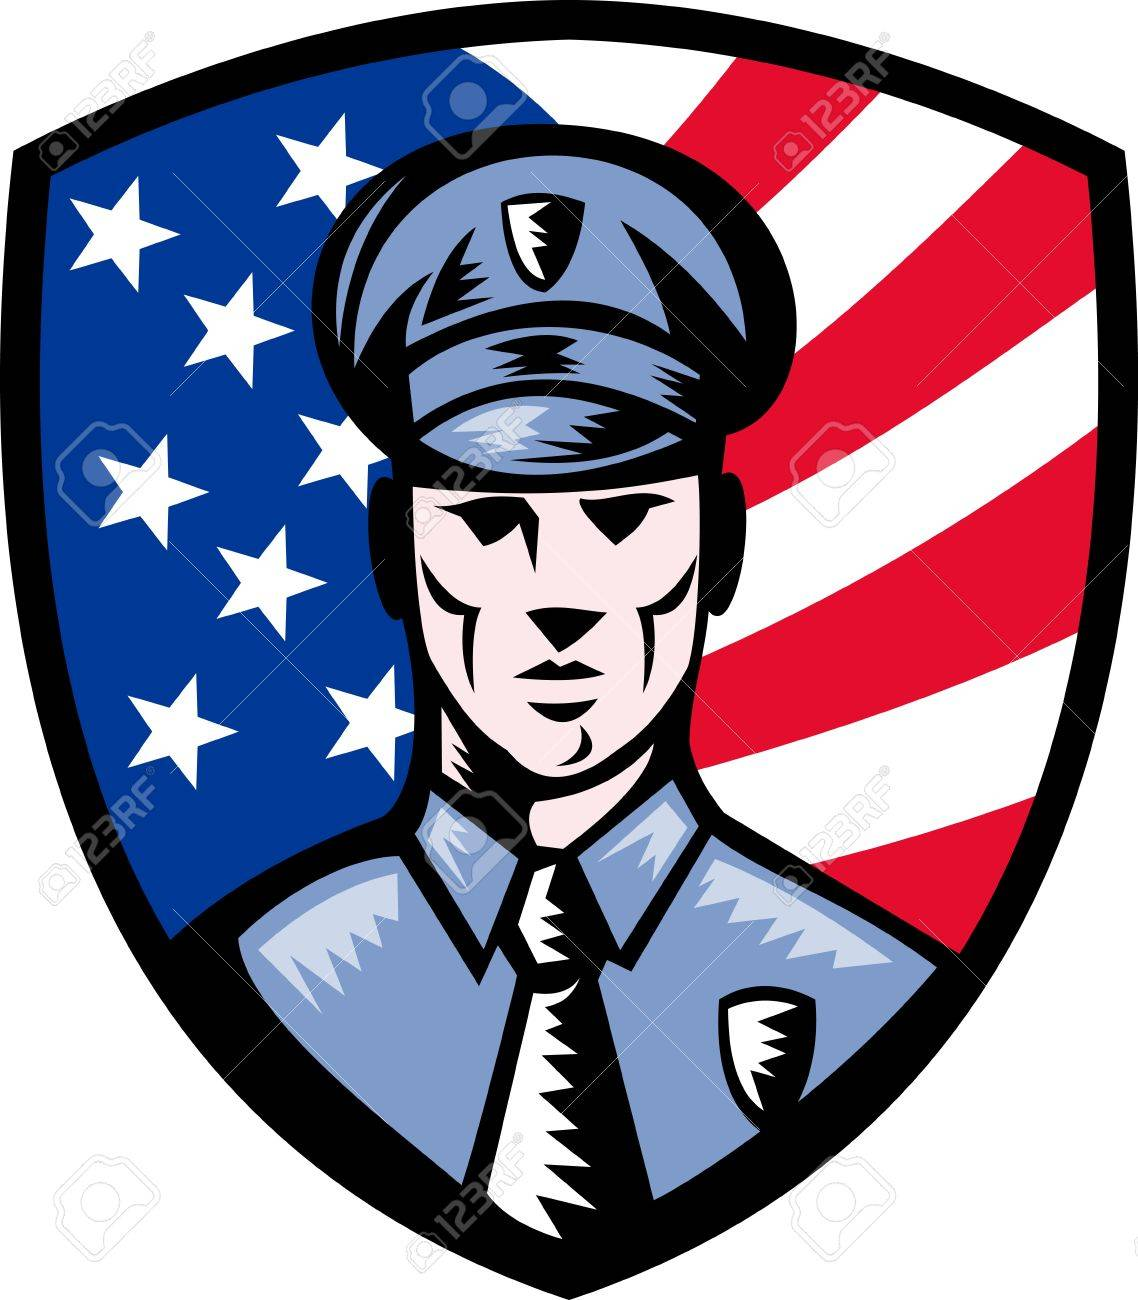 illustration of a Policeman Police Officer facing front with American stars and stripes flag in background set inside shield isolated on white. Stock Illustration - 8781234